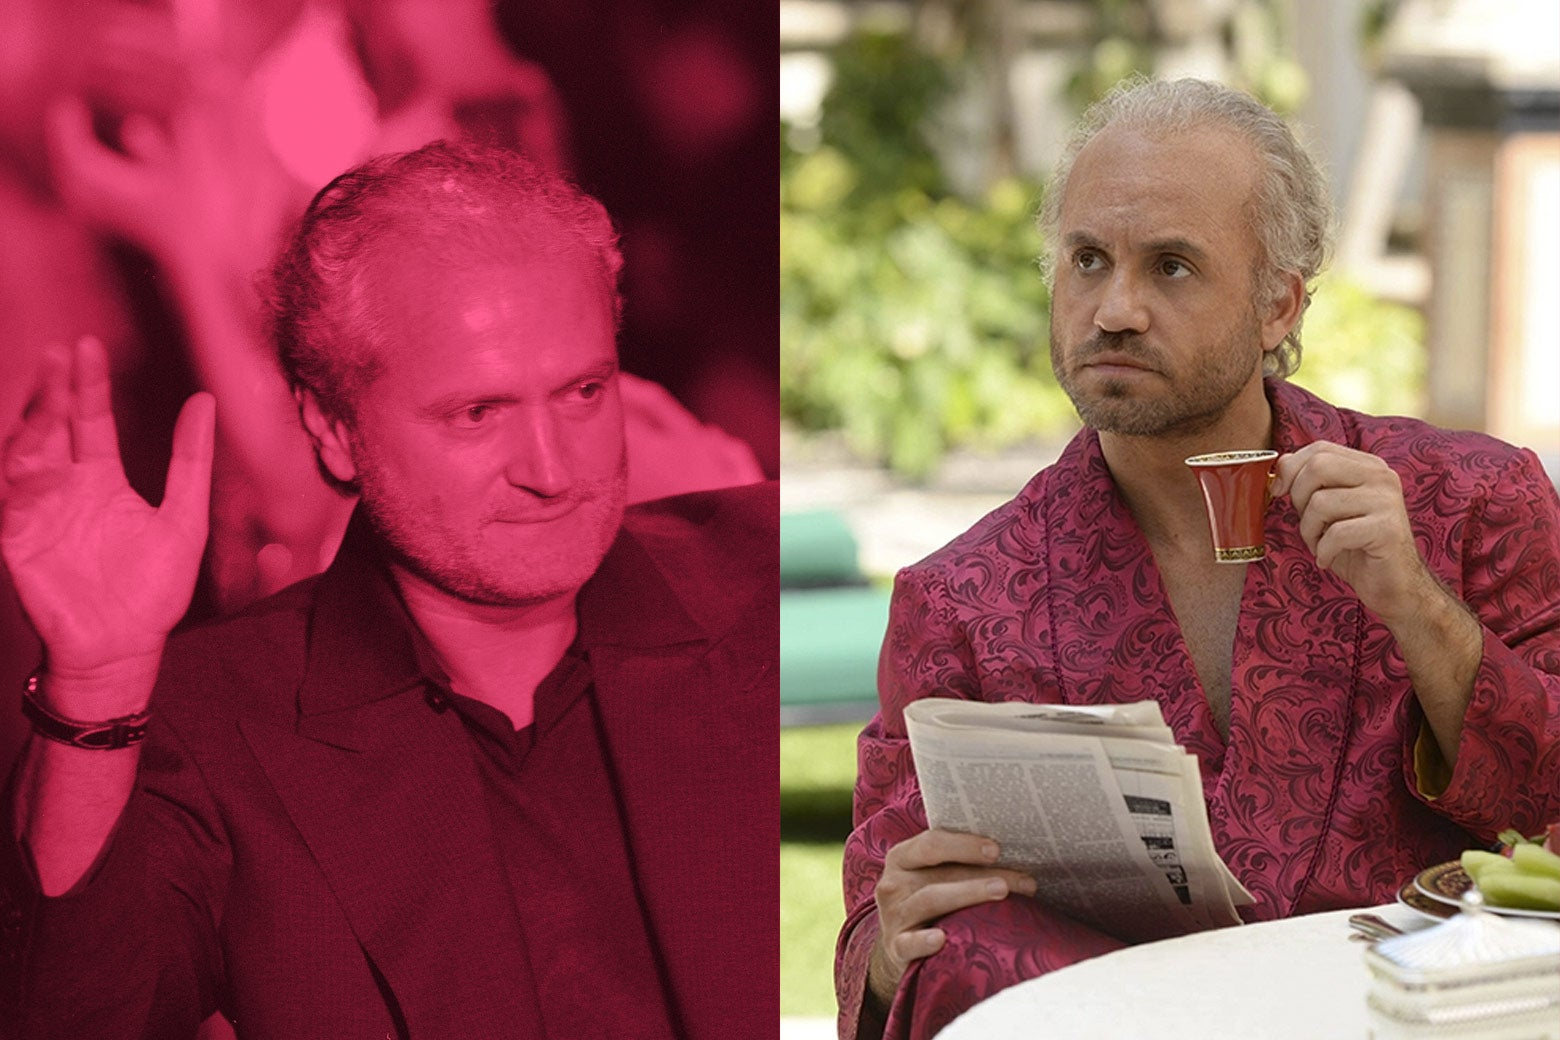 Gianni Versace in real-life vs. as played by Édgar Ramírez on American Crime Story